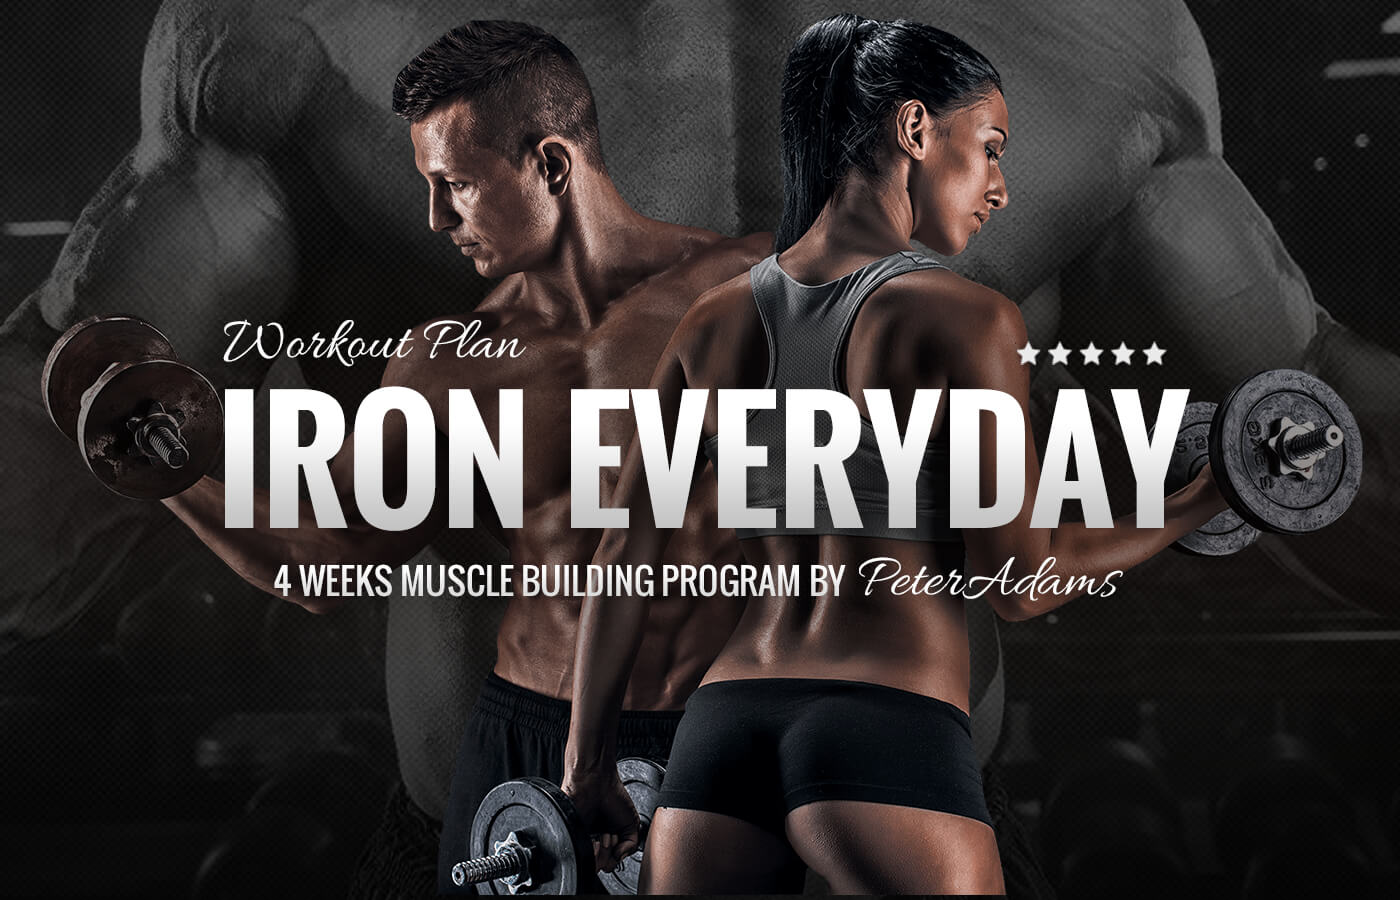 Iron Every Day